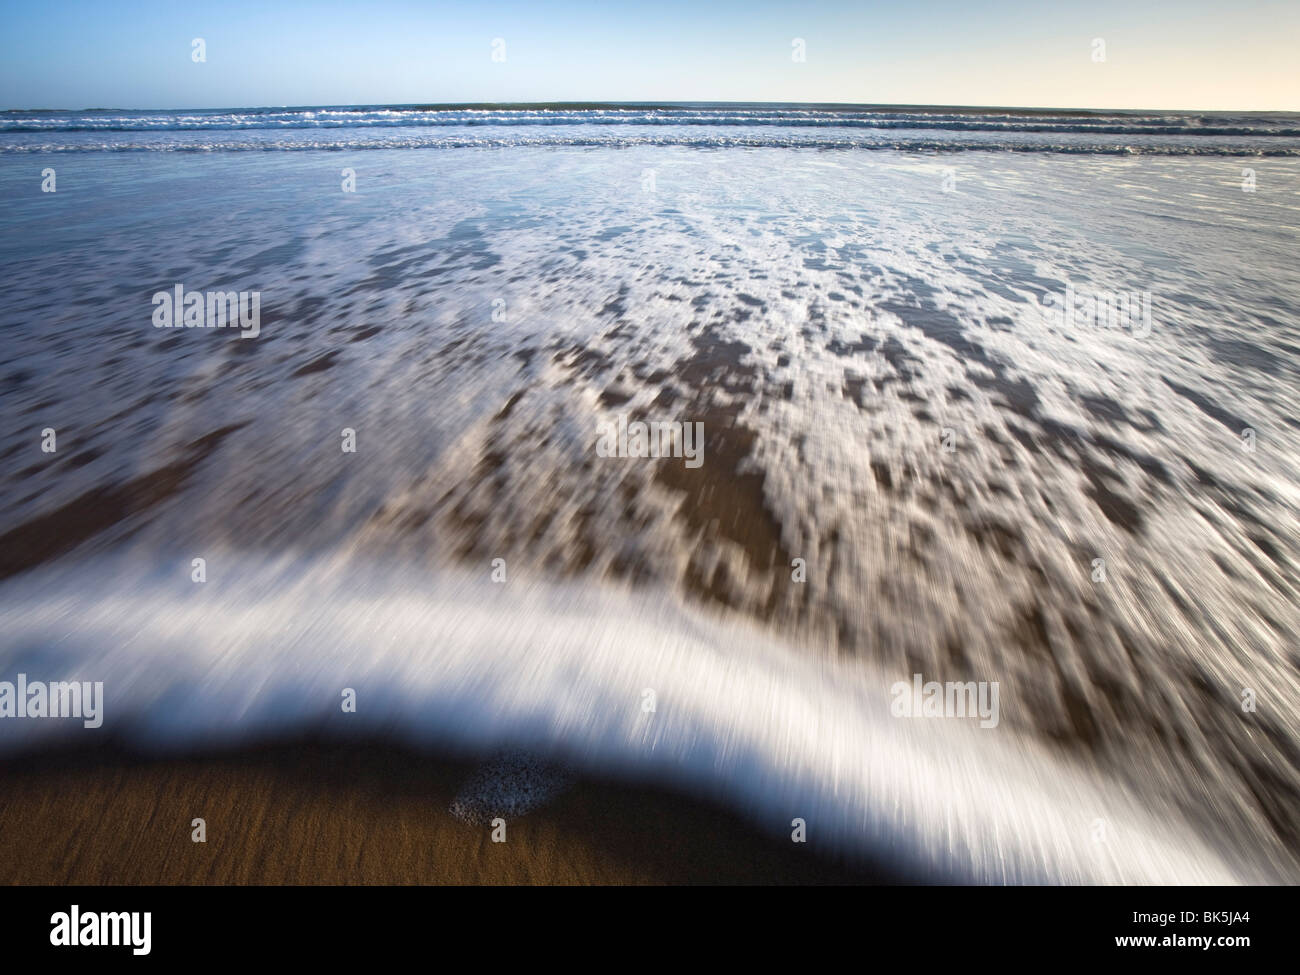 Surf washing up the beach, Embleton Bay, Northumberland, England, United Kingdom, Europe - Stock Image